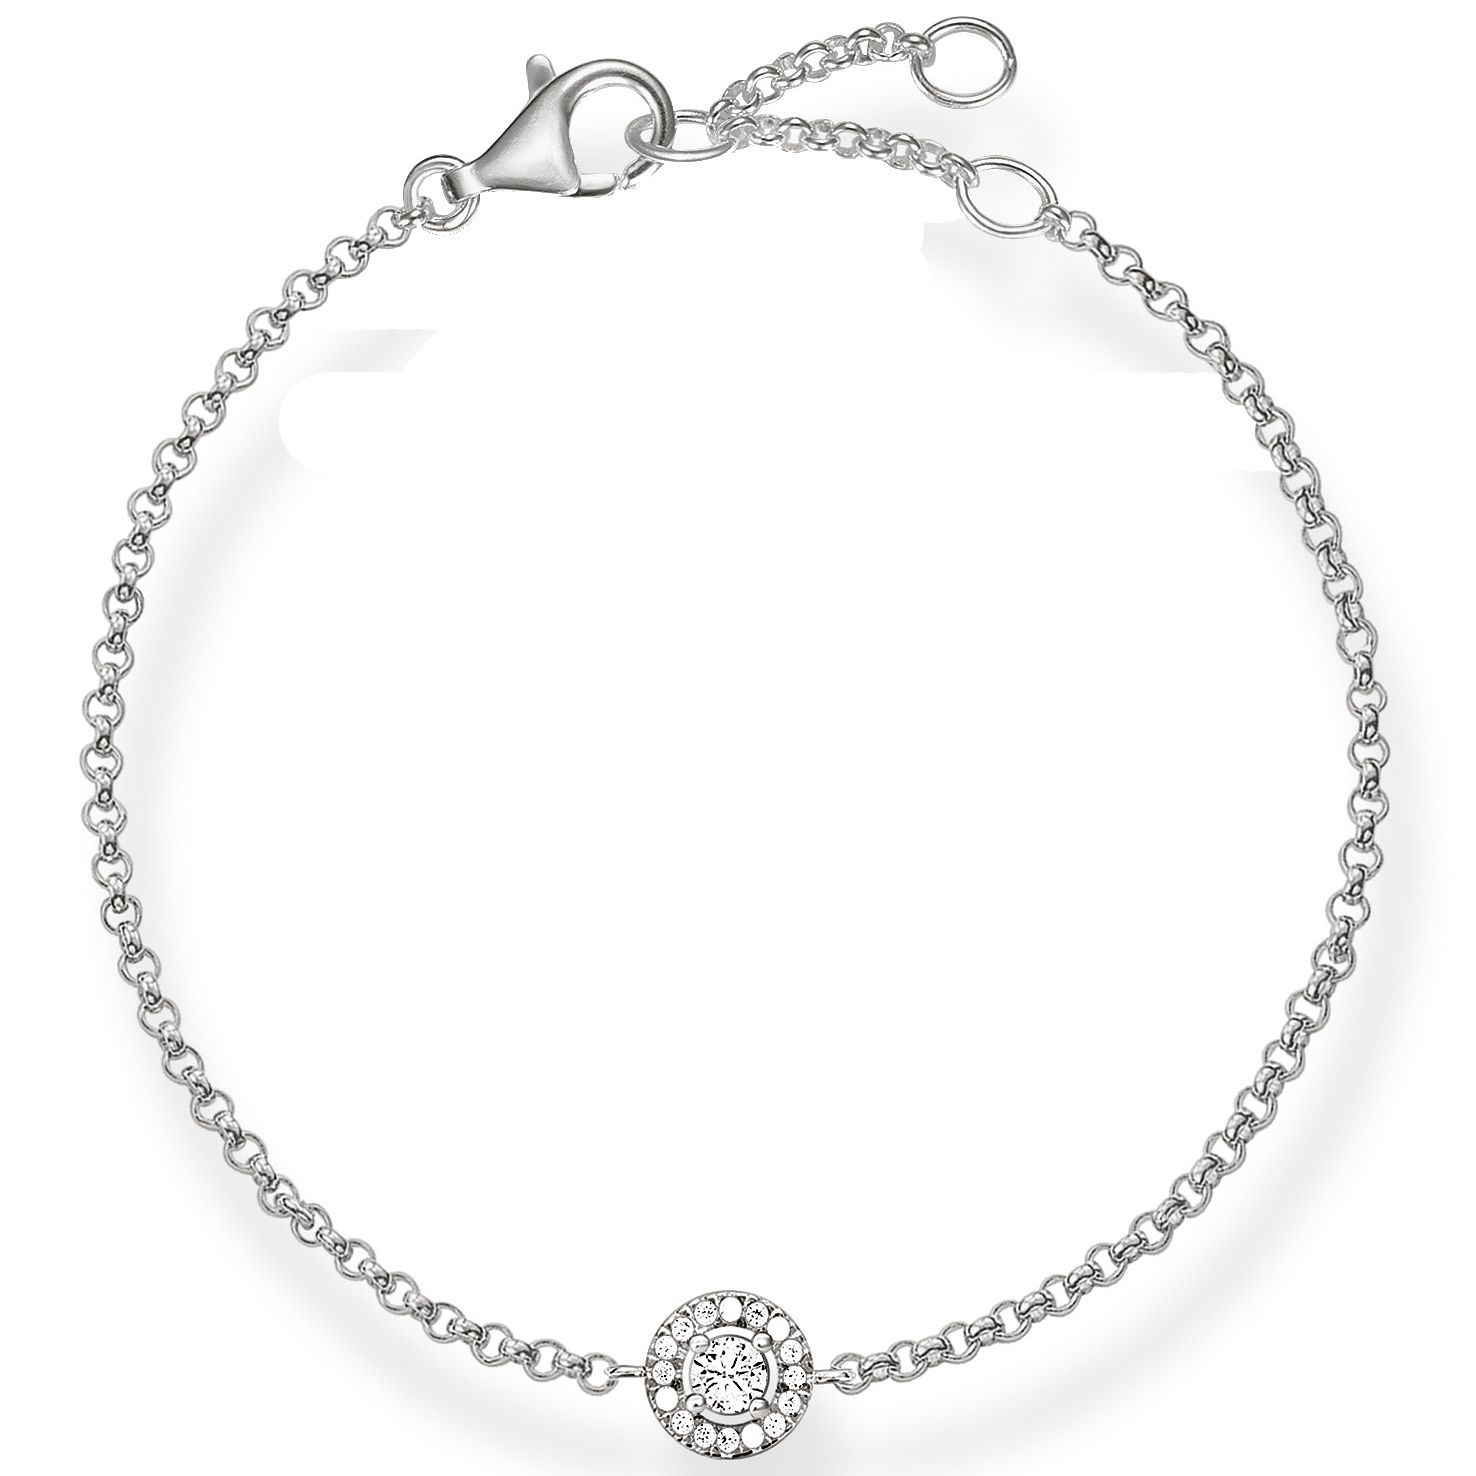 Thomas Sabo Sterling Silver Classic Stone Set Bracelet - Product number 5699258